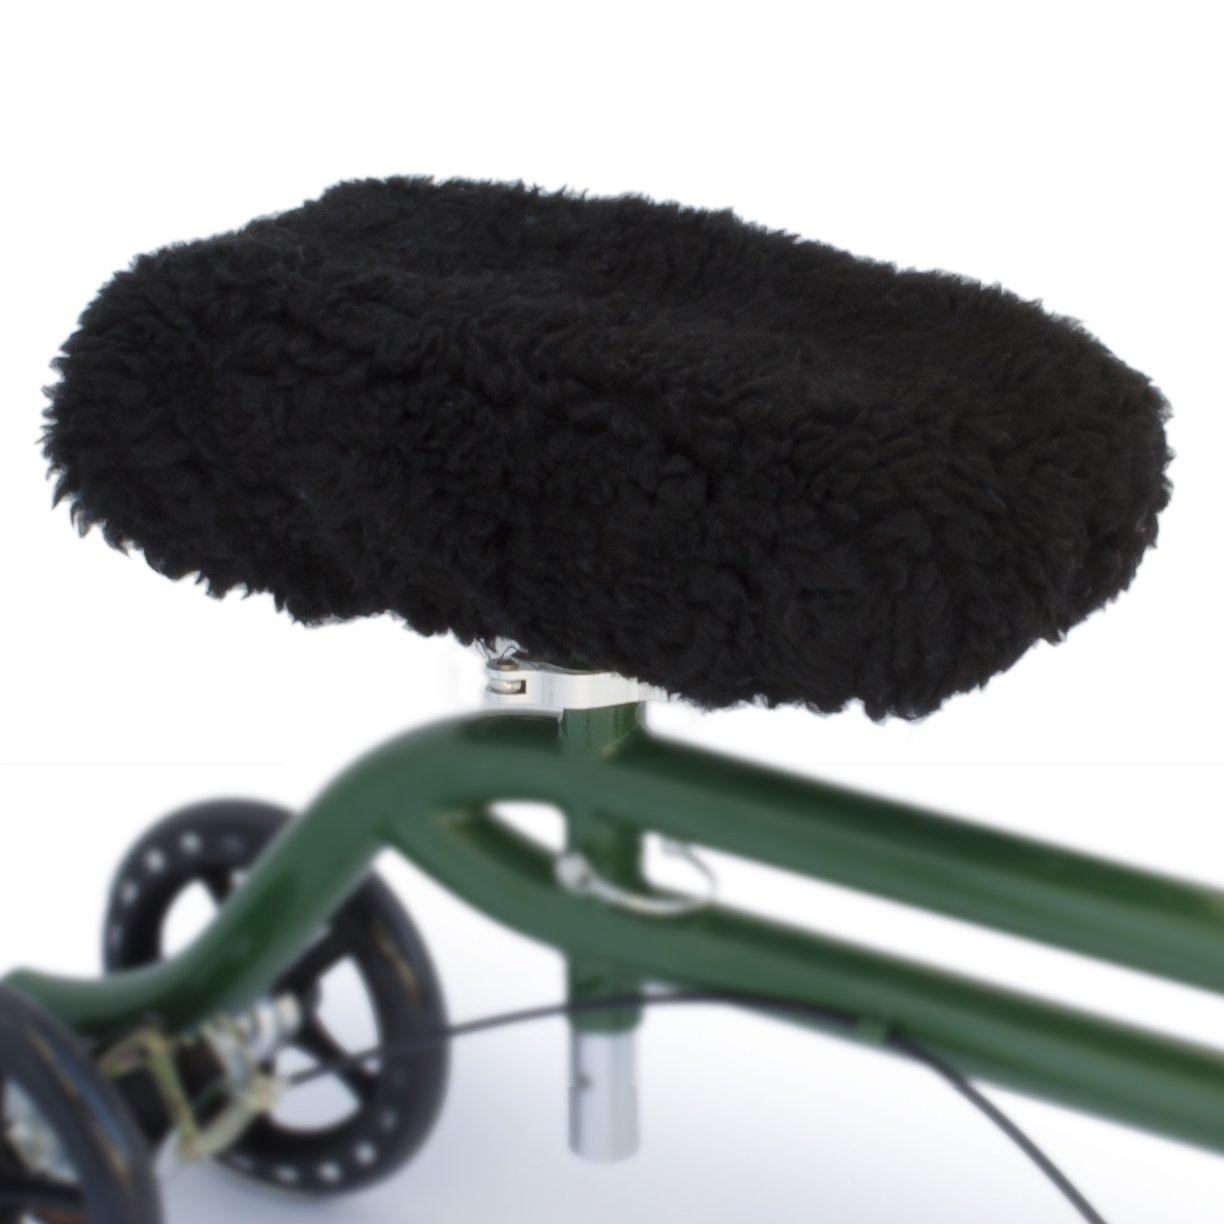 DELUXE Universal Knee Walker Pad Cover (Black) by Top Glides